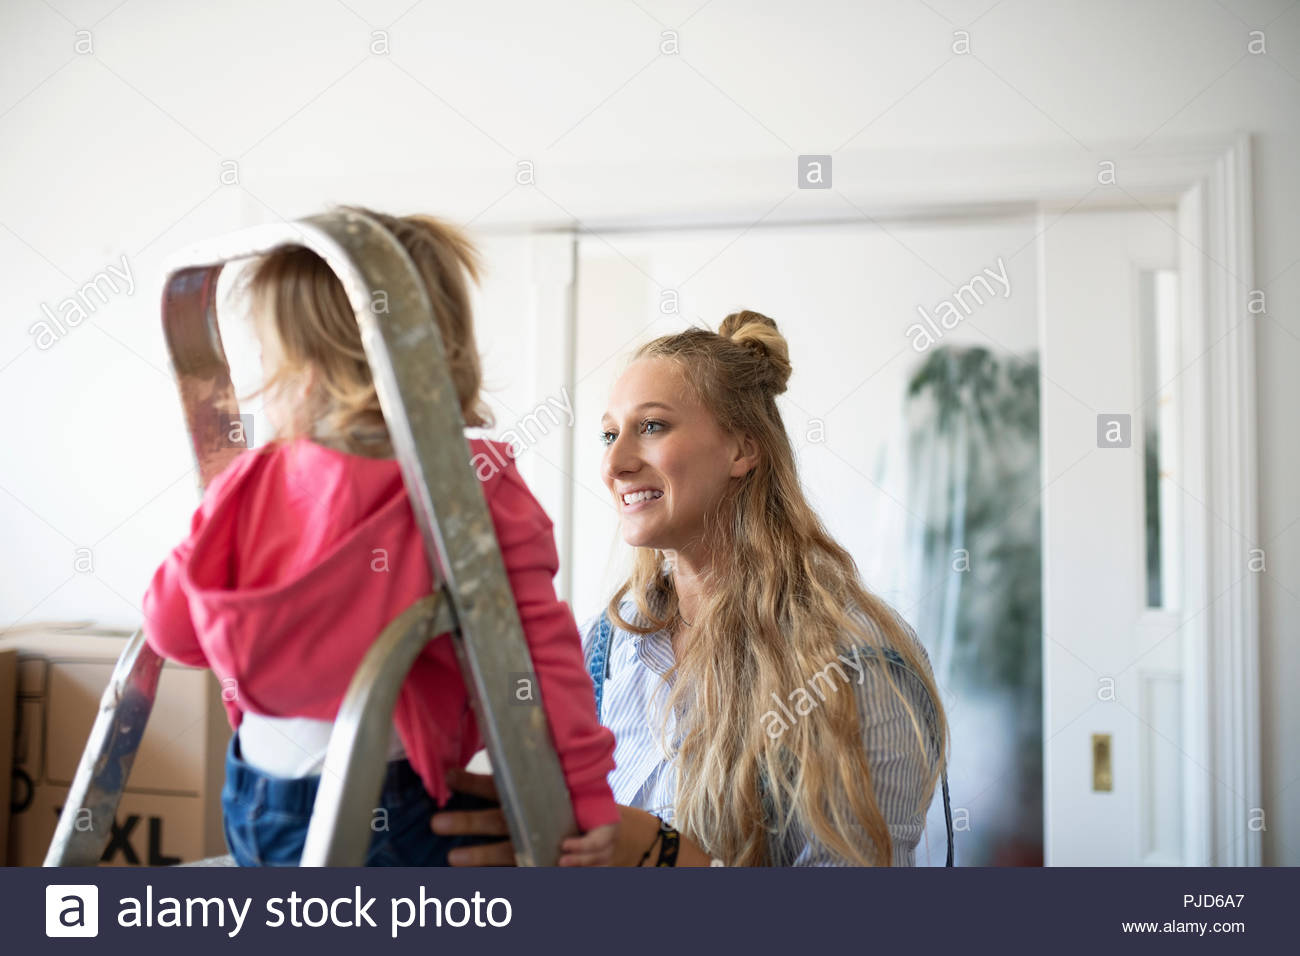 Mother and daughter moving into new home - Stock Image